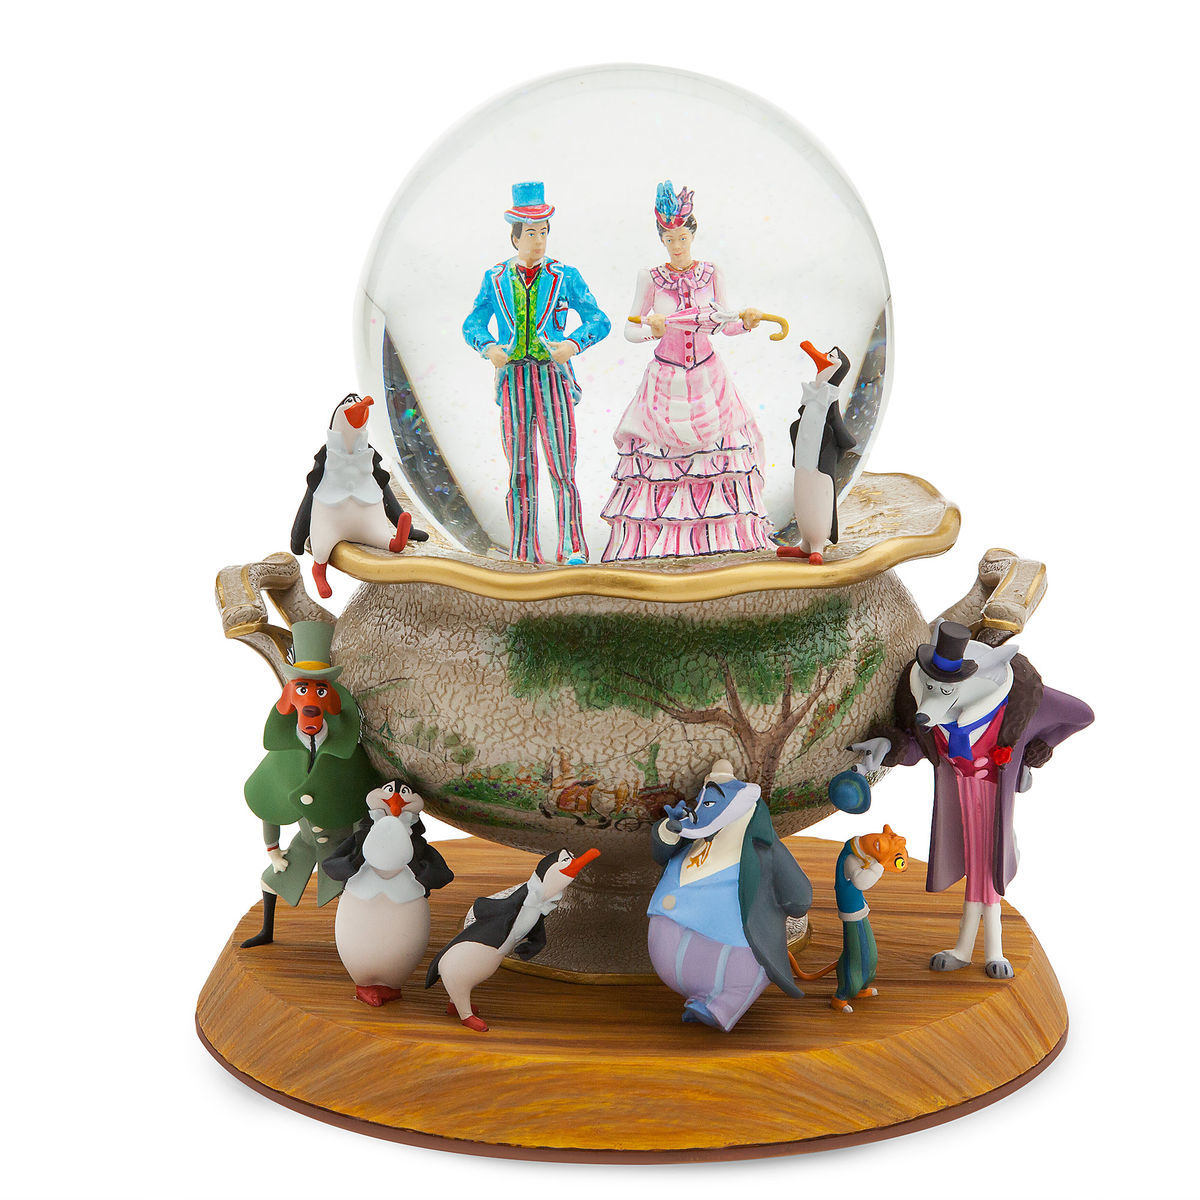 Disney Store Mary Poppins Umbrella Sketchbook Christmas Ornament New in Box 2018